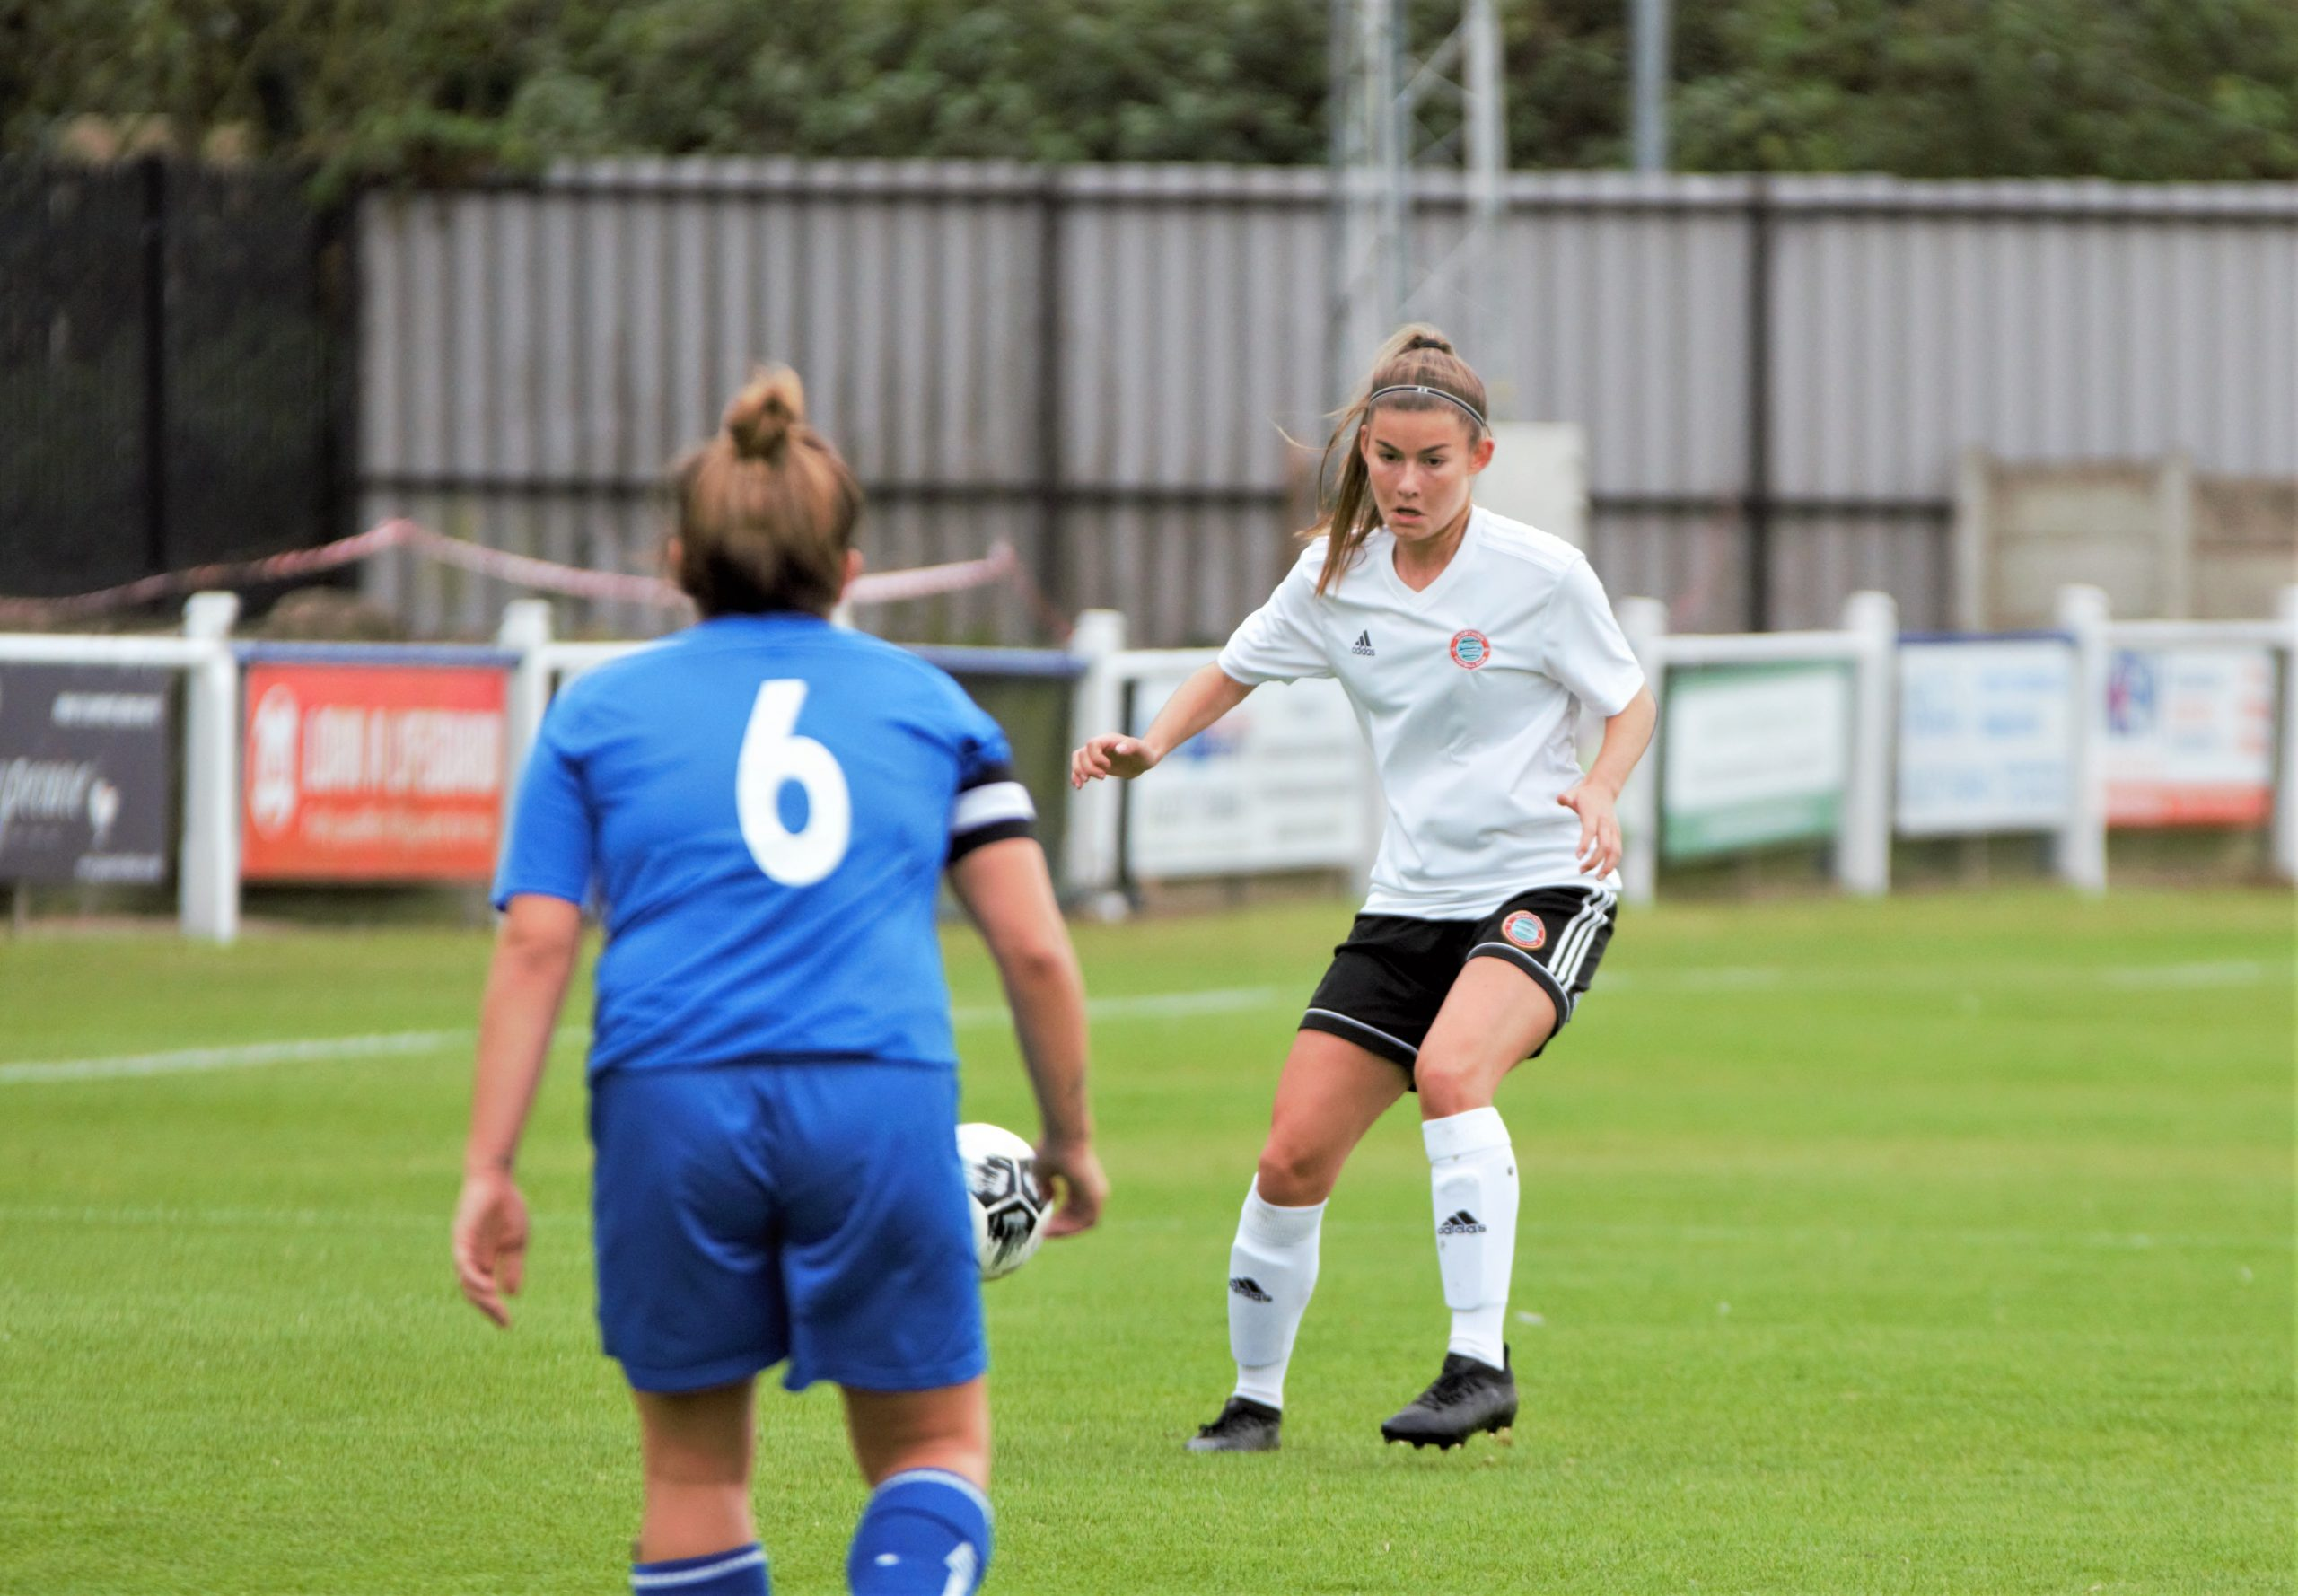 Read the full article - Herne Bay snatch late winner as Mackerels fall to defeat